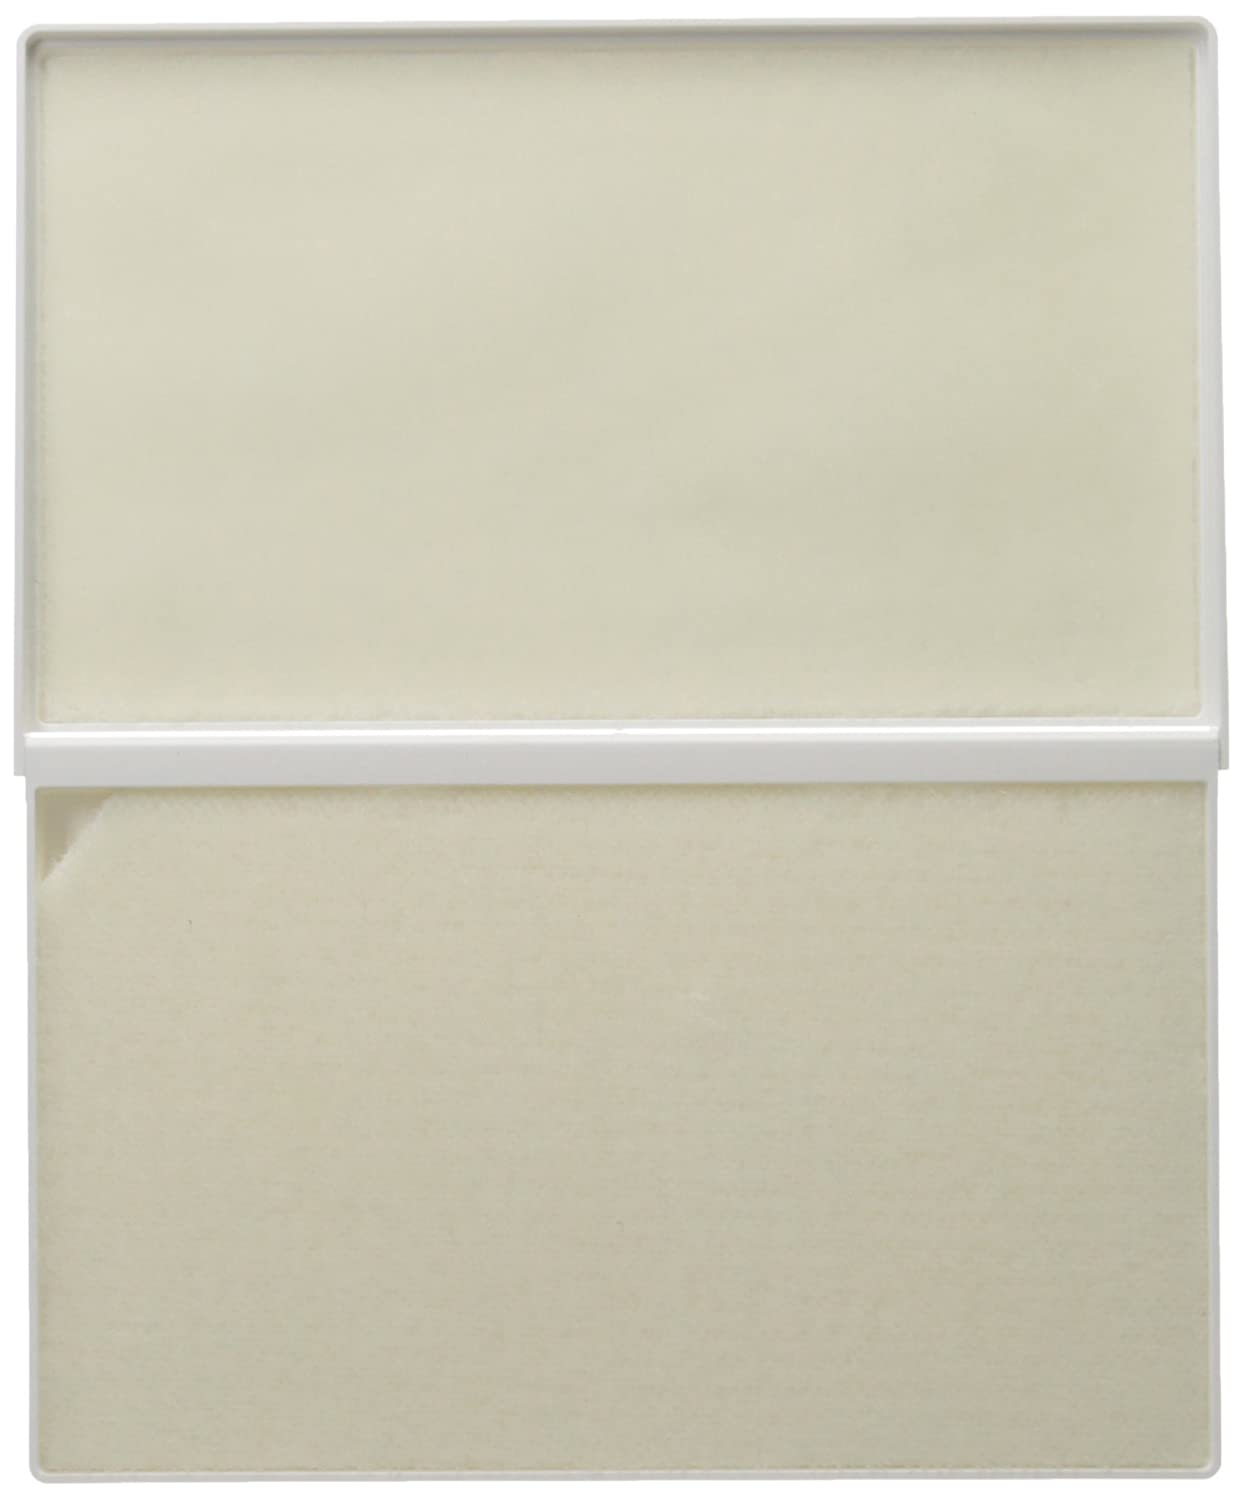 Hero Arts NK301 ClearDesign Double Scrubber Pad 7.5/″ x 4.5/″